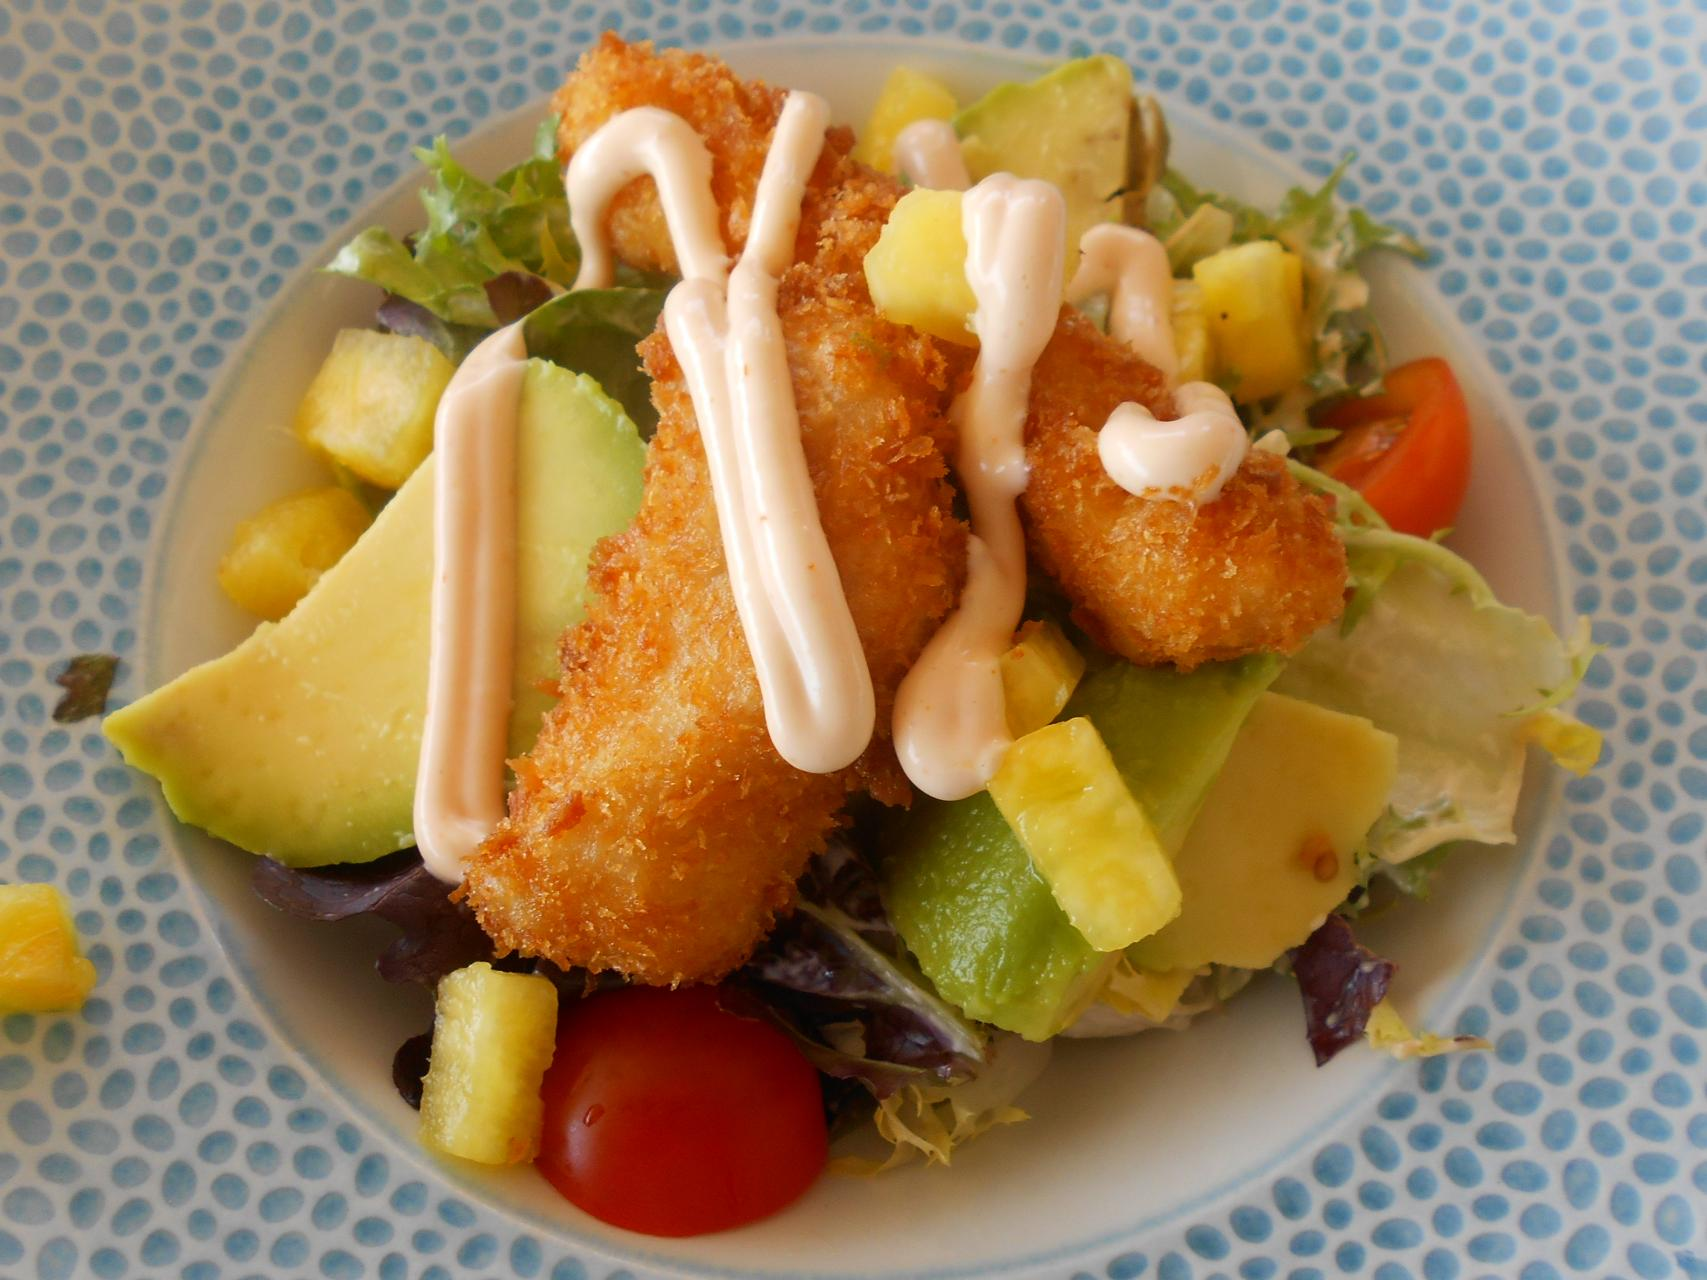 The crispy breadcrumbed chicken with avocado and pineapple.